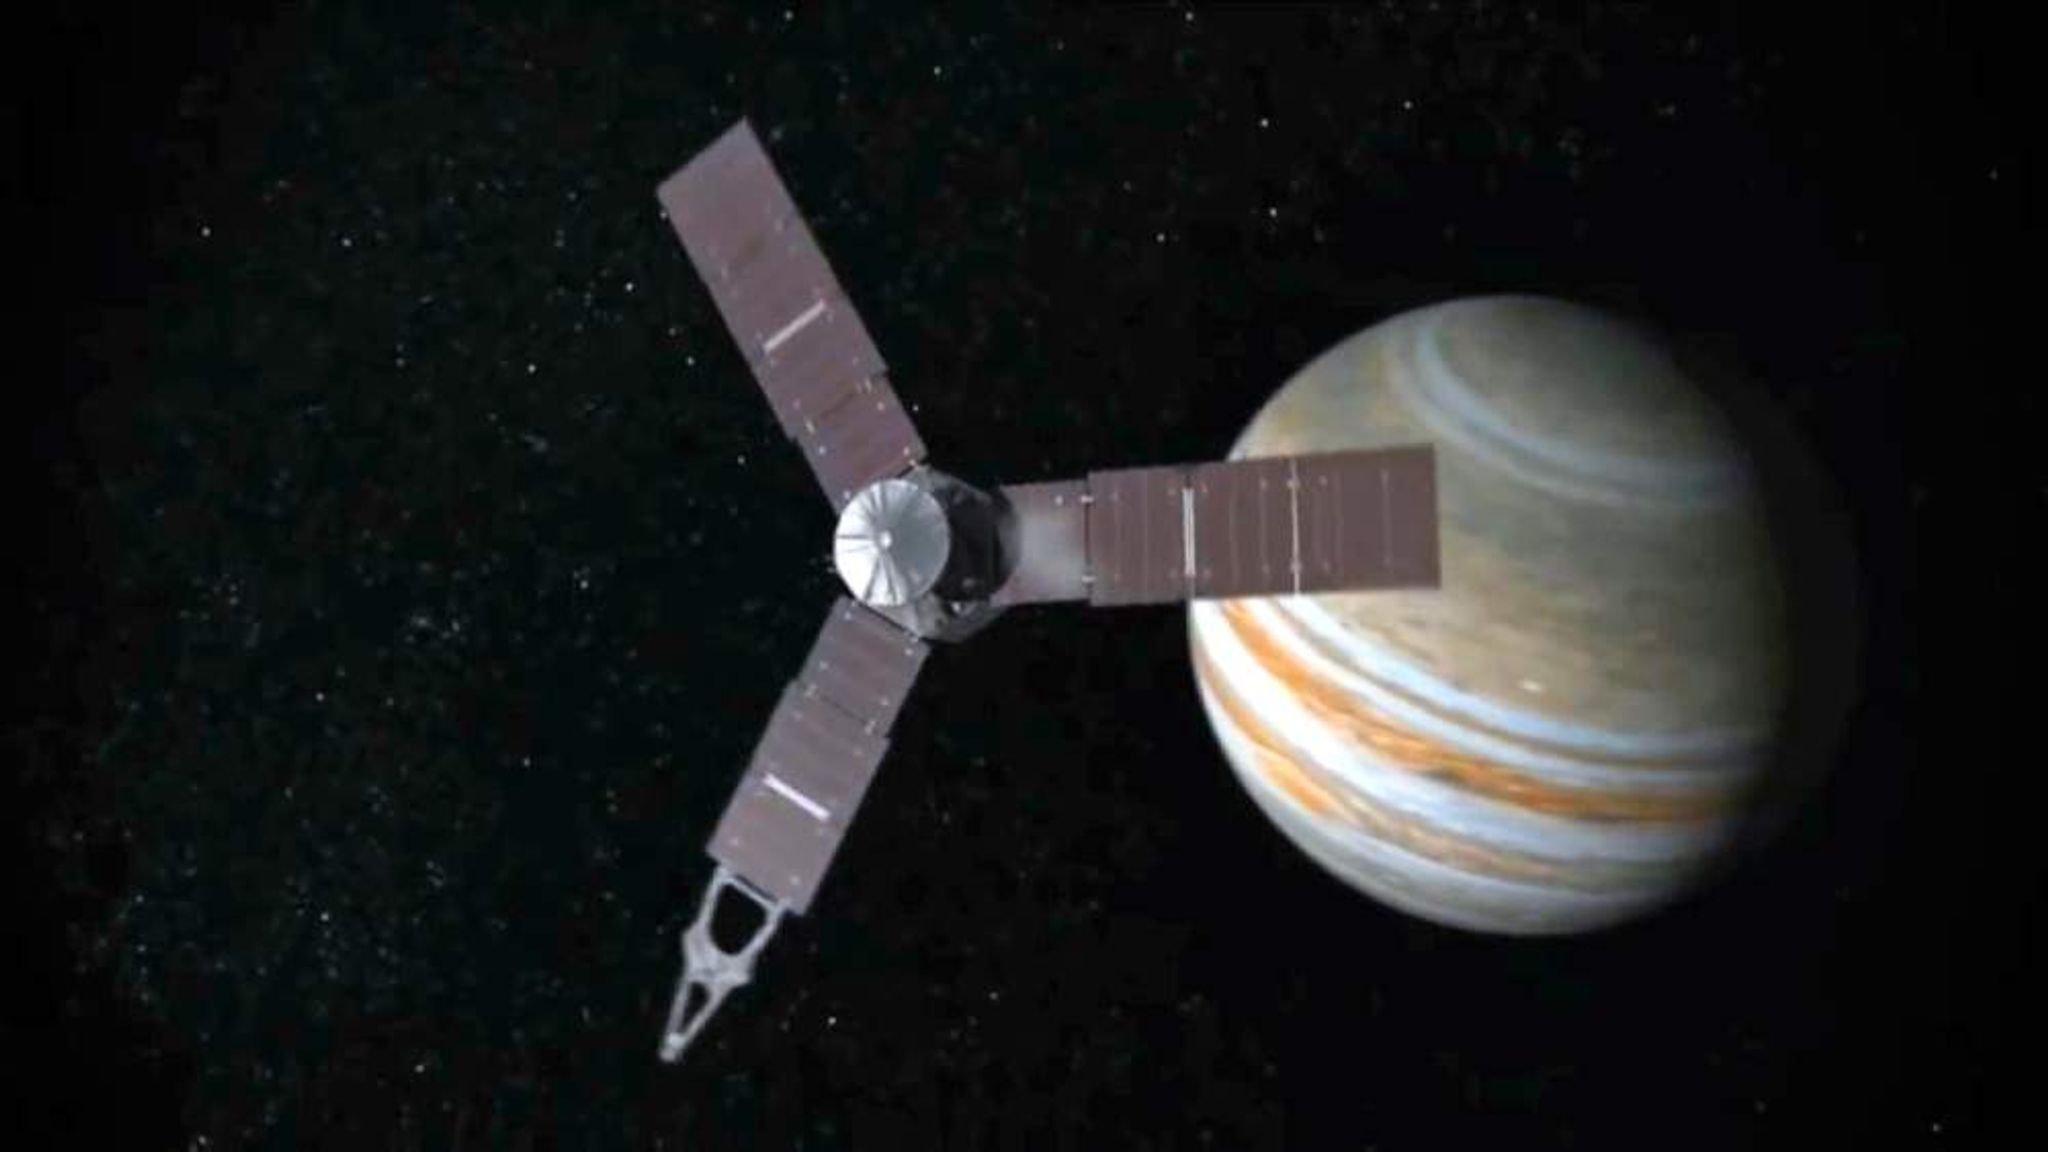 planet nasas juno spacecraft - HD 1536×768